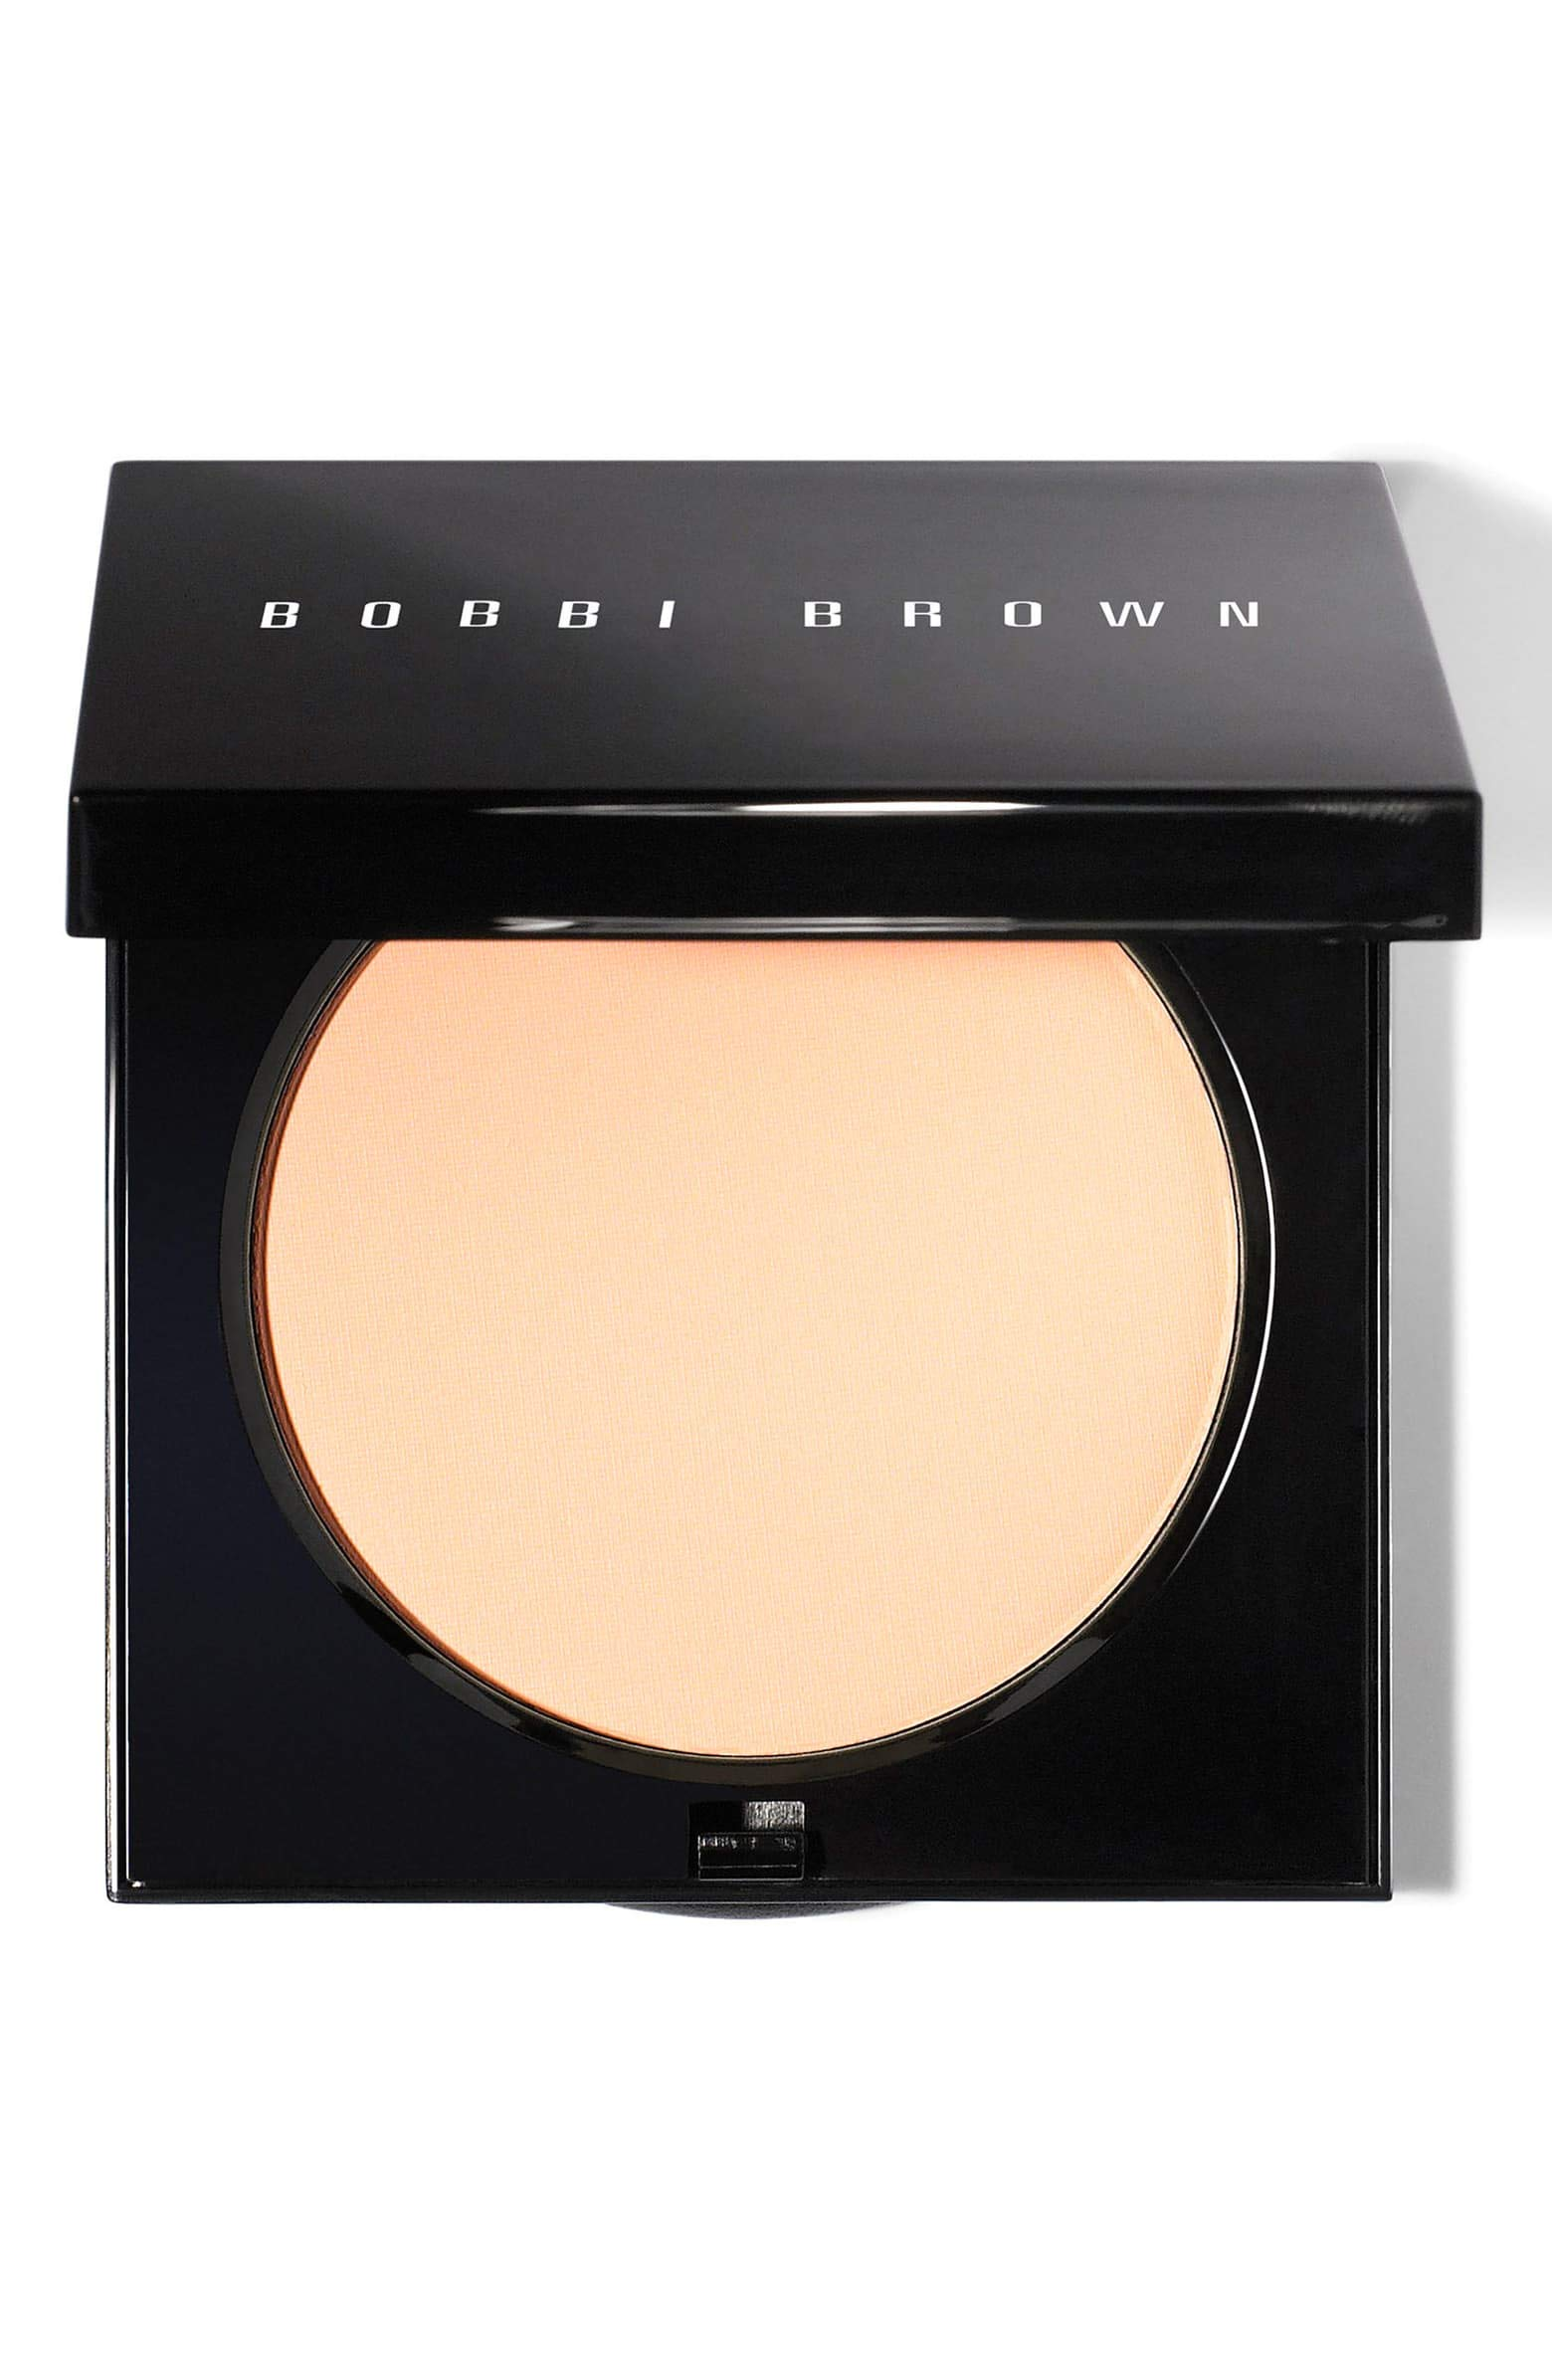 Bobbi Brown Sheer Finish Pressed Powder, No. 02 Sunny Beige, 0.38 Ounce